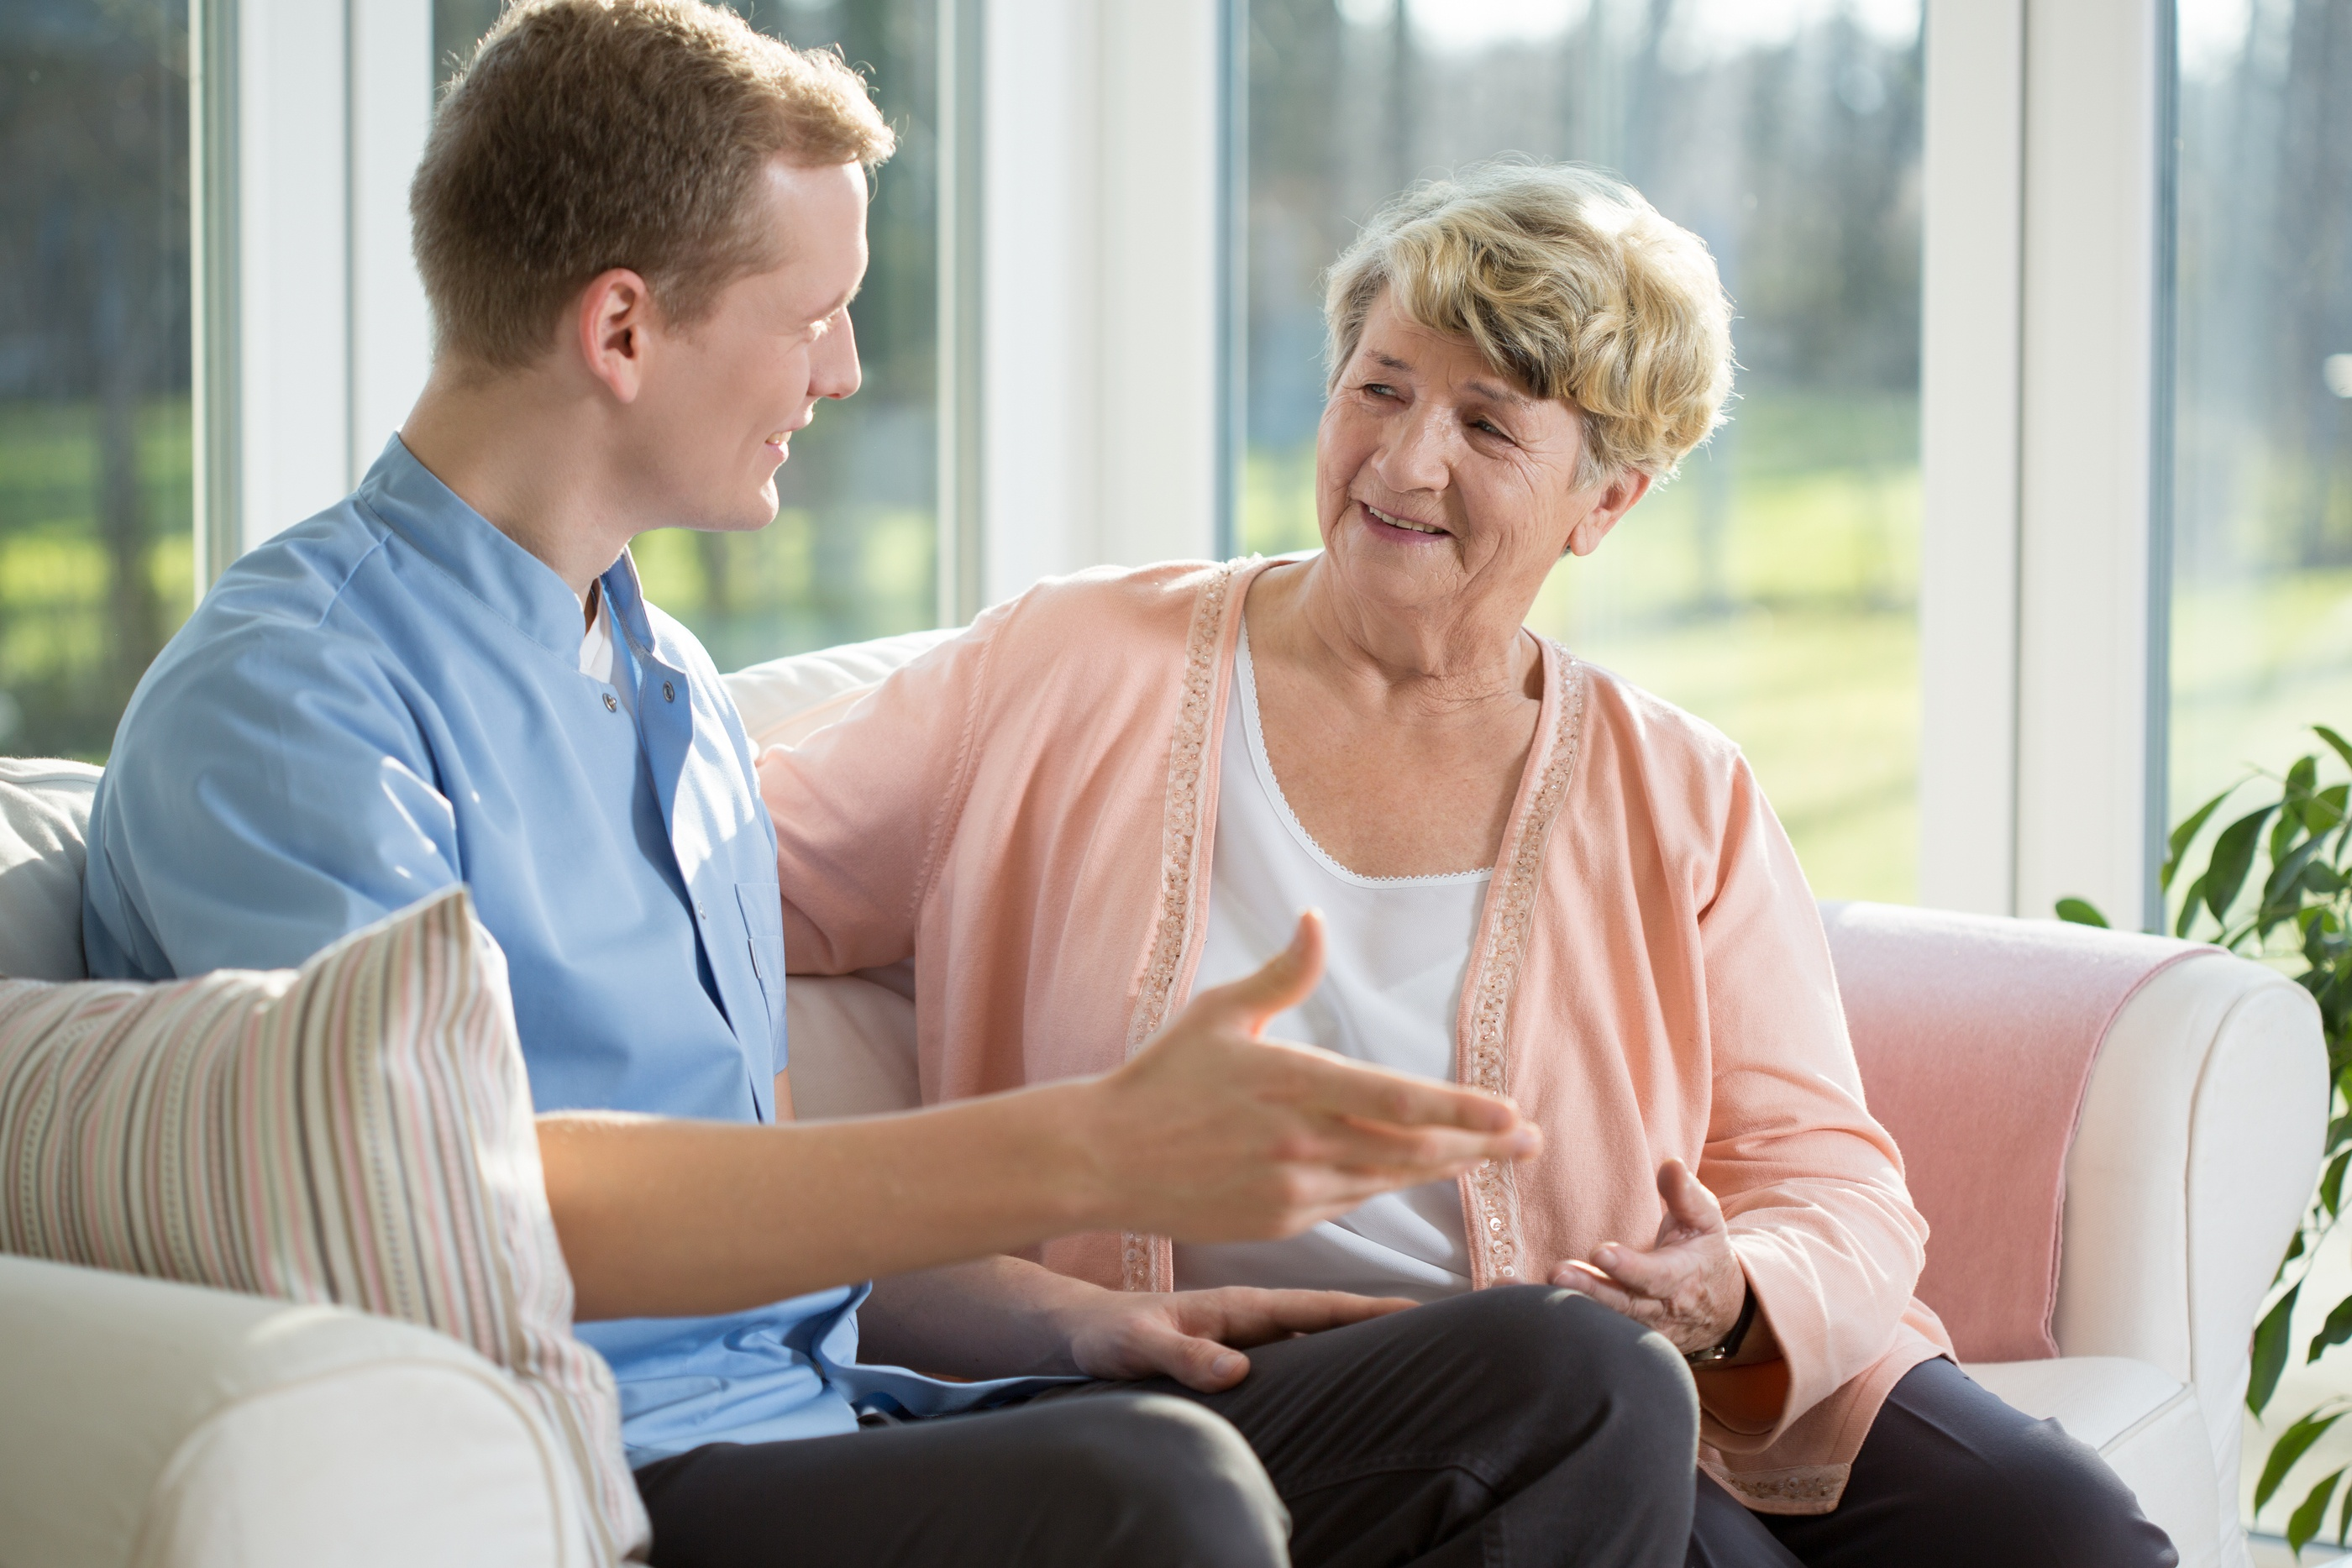 Professional Caregiver for Older Adults - Part III: Professional Boundaries